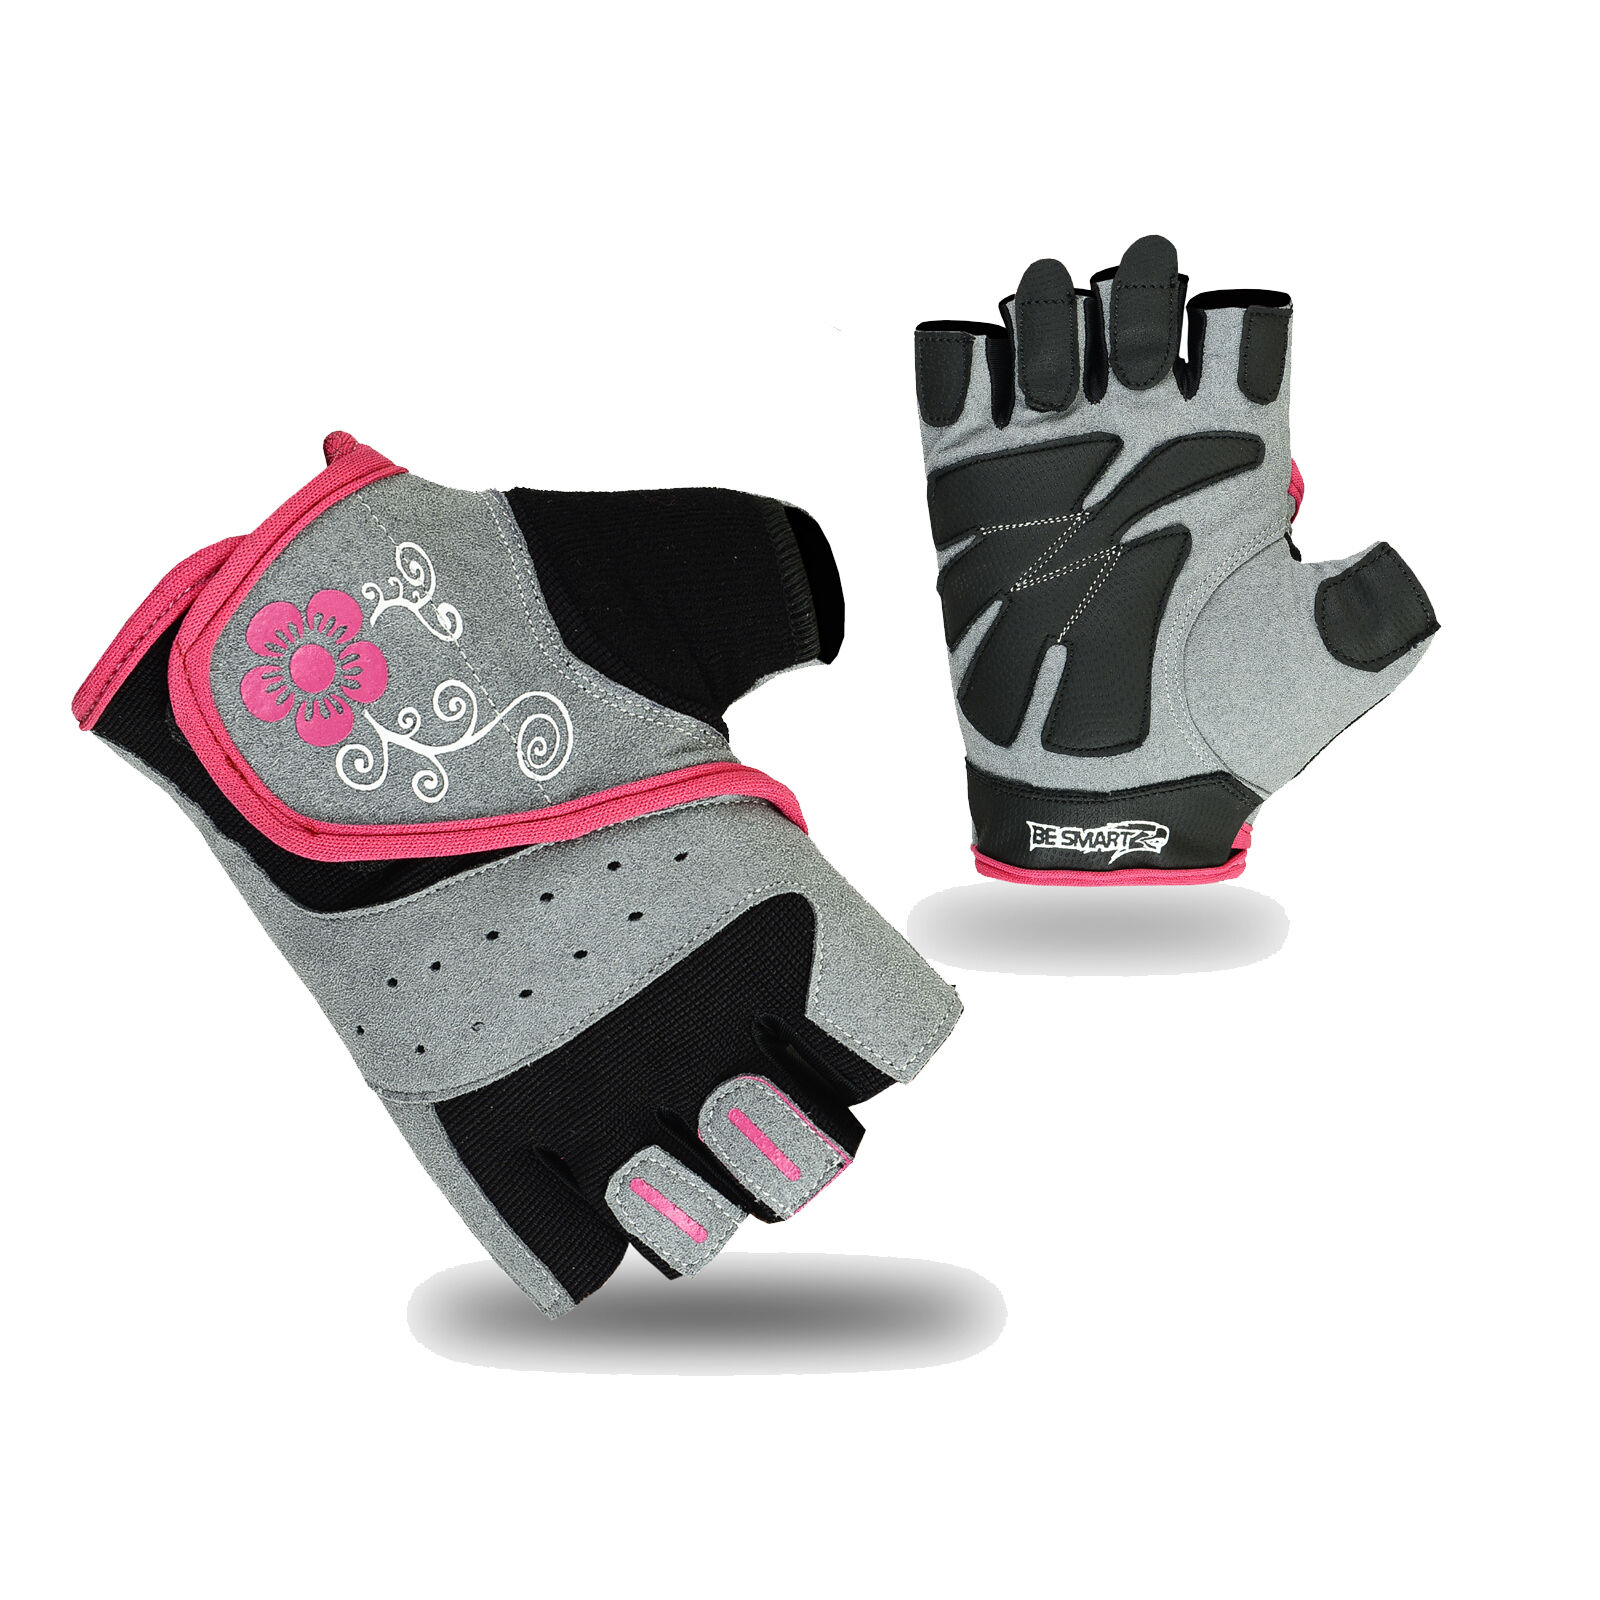 Ladies Gel Gloves Fitness Gym Wear Weight Lifting Workout Training Cycling N